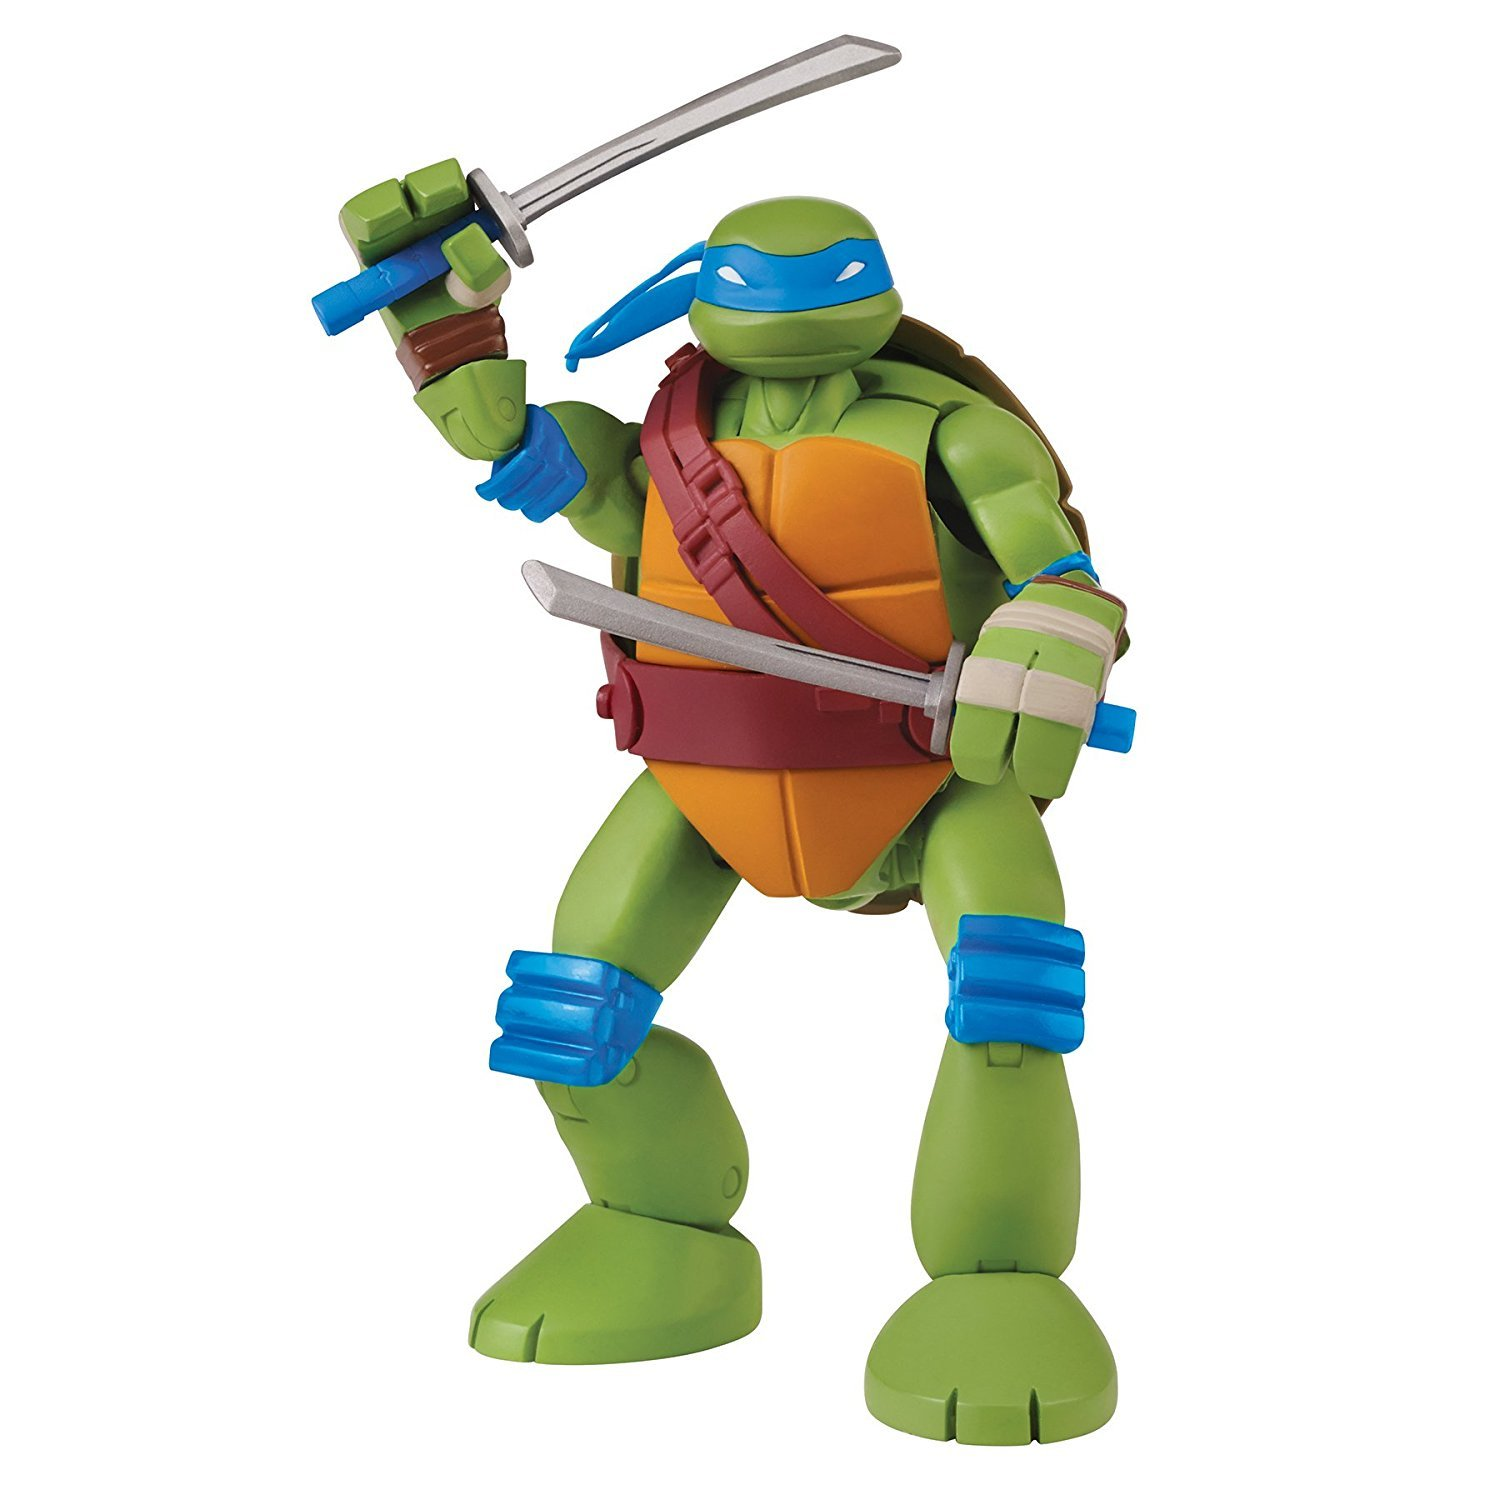 Turtle Toys For Boys : Teenage mutant ninja turtles mutations pet to